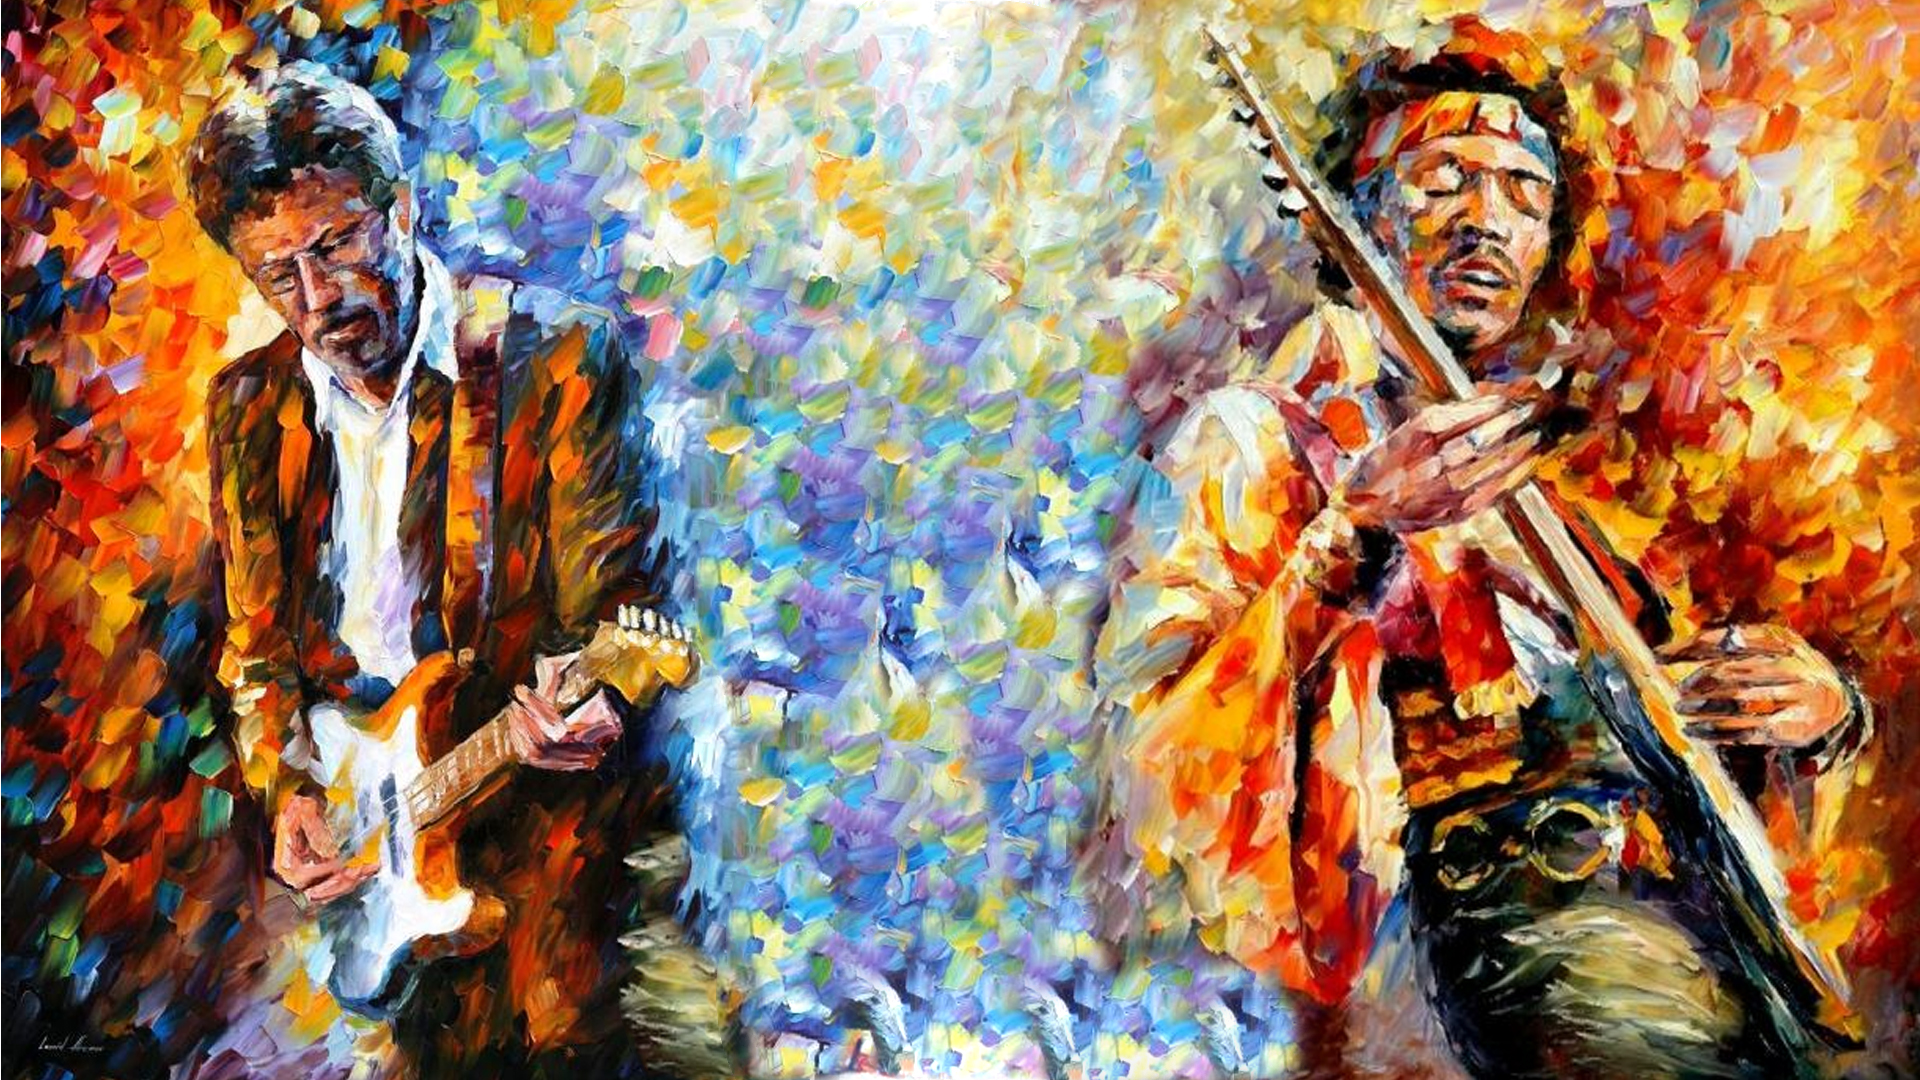 Hendrix and clapton wallpaper by crosshair games on deviantart hendrix and clapton wallpaper by crosshair games thecheapjerseys Choice Image